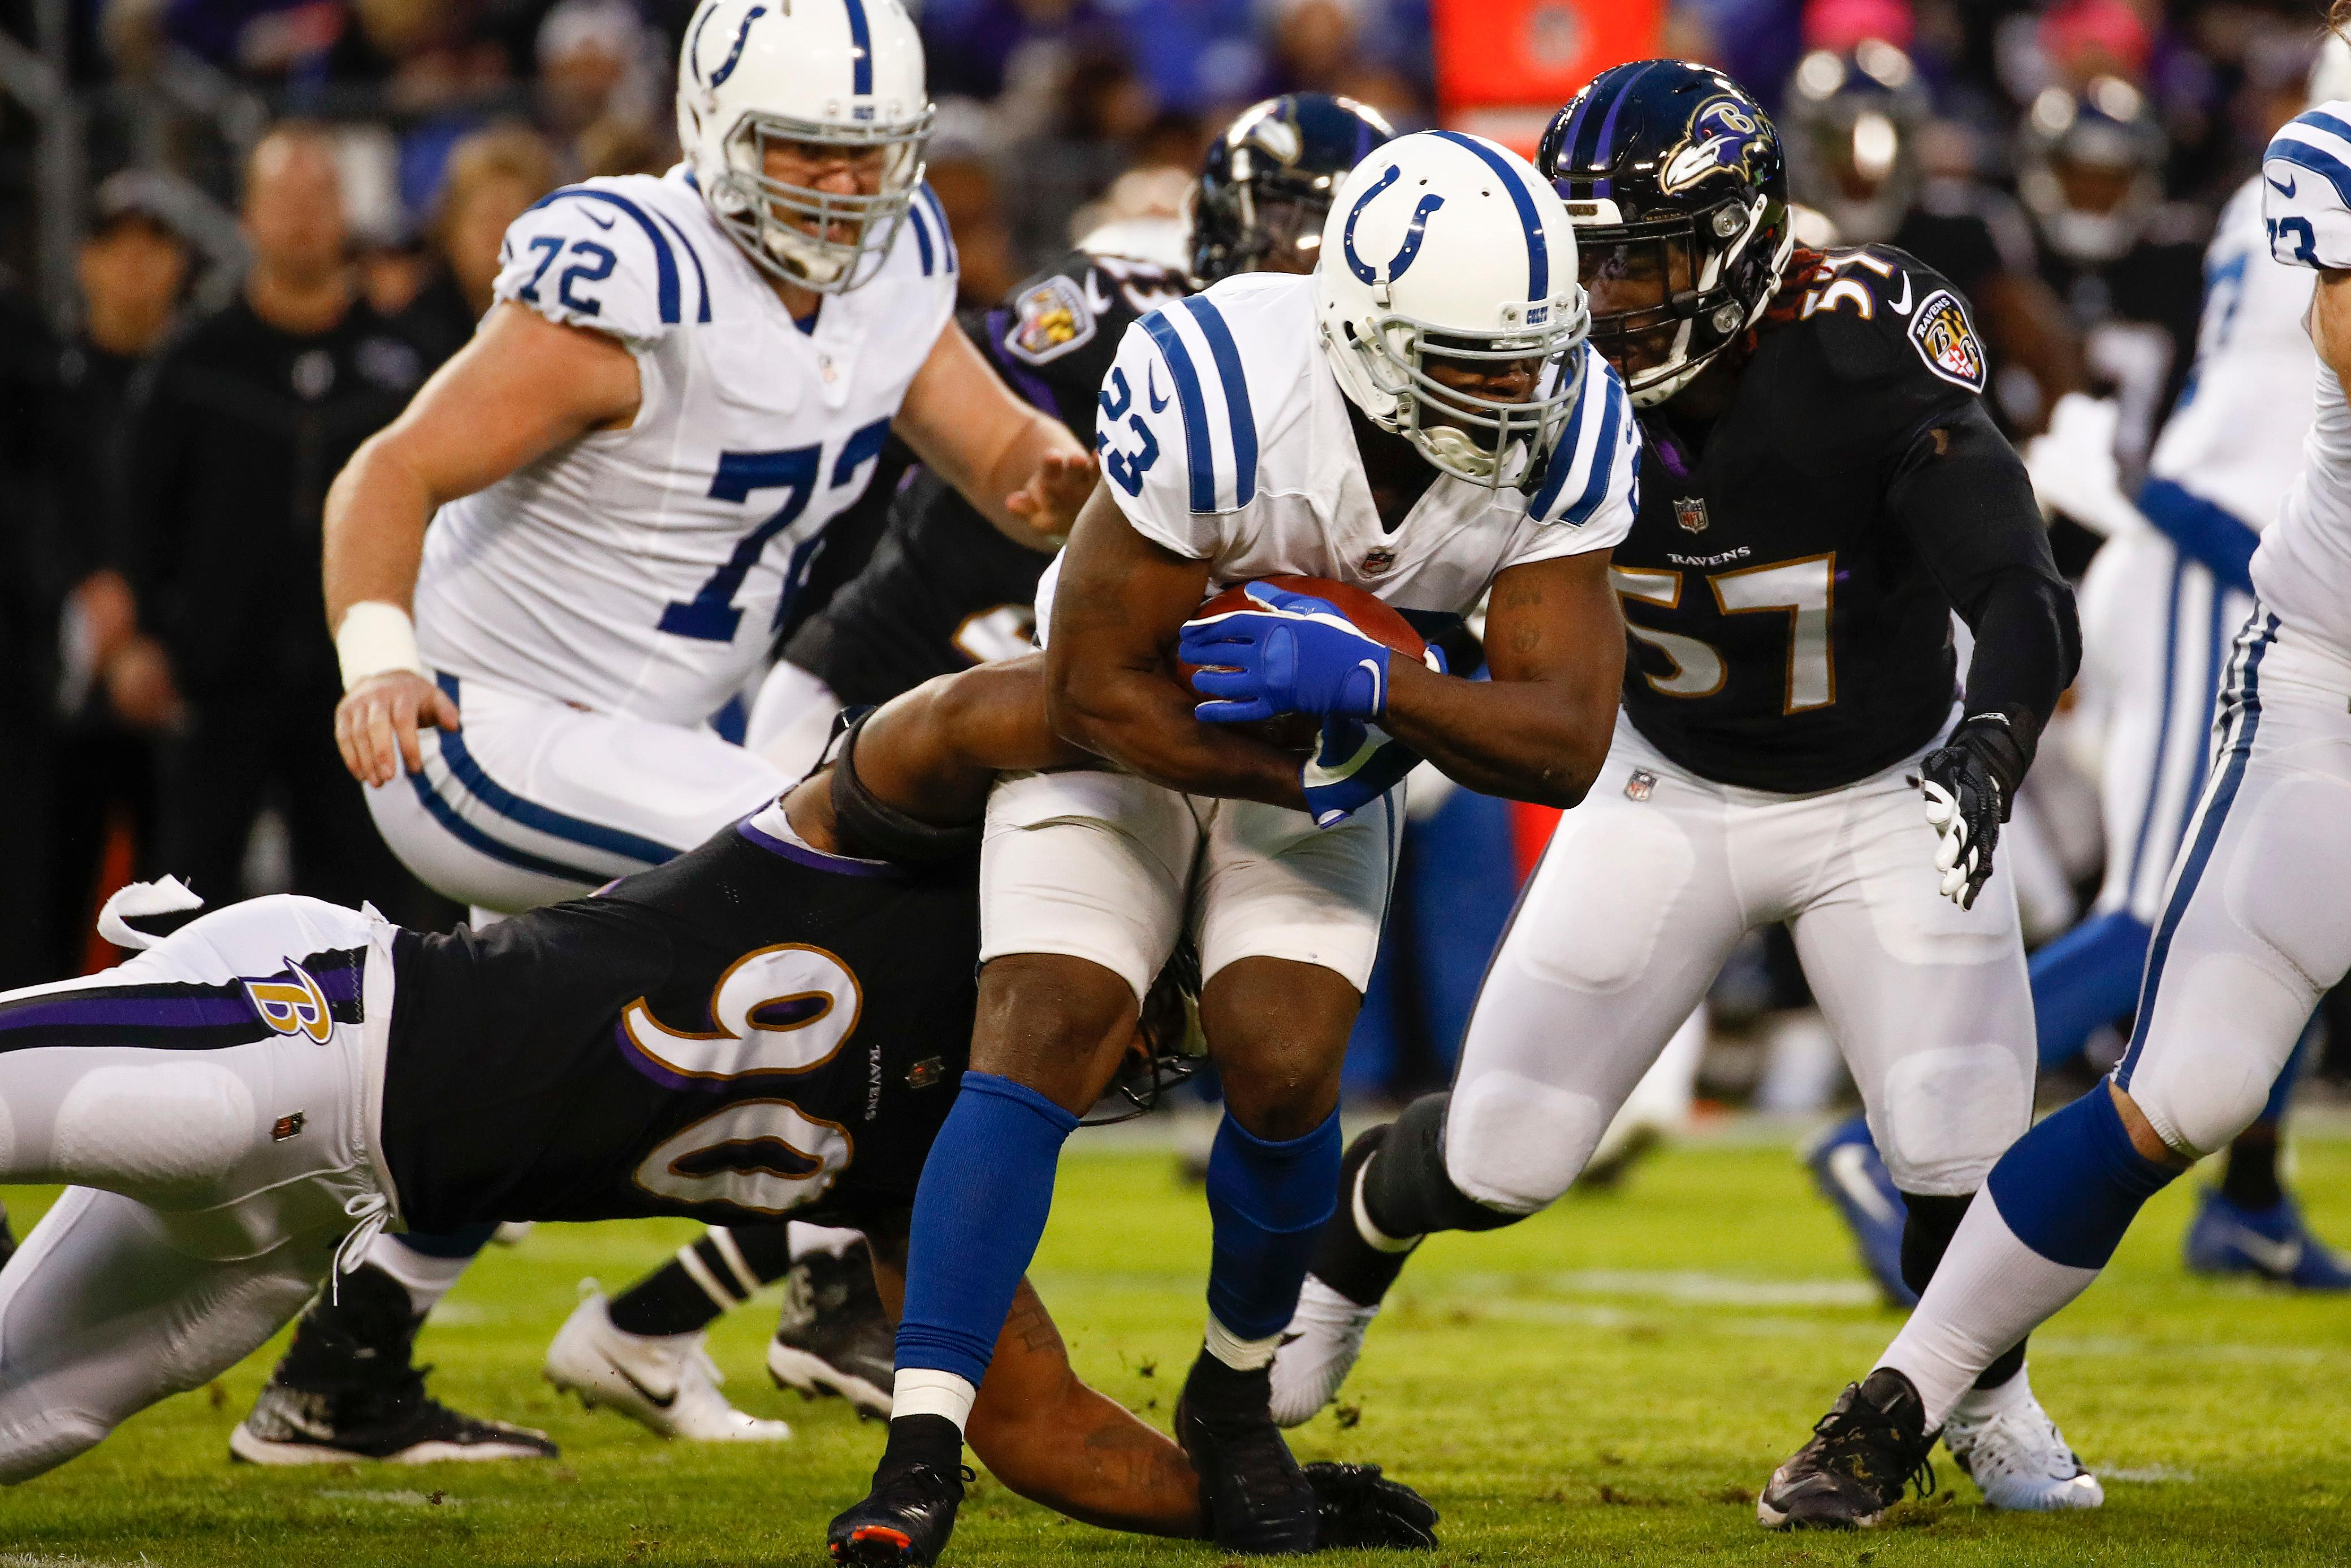 Indianapolis Colts running back Frank Gore (23) is stopped by Baltimore Ravens defensive end Za'Darius Smith (90) and inside linebacker C.J. Mosley (57) during the first half of an NFL football game in Baltimore, Saturday, Dec 23, 2017. (AP Photo/Patrick Semansky)